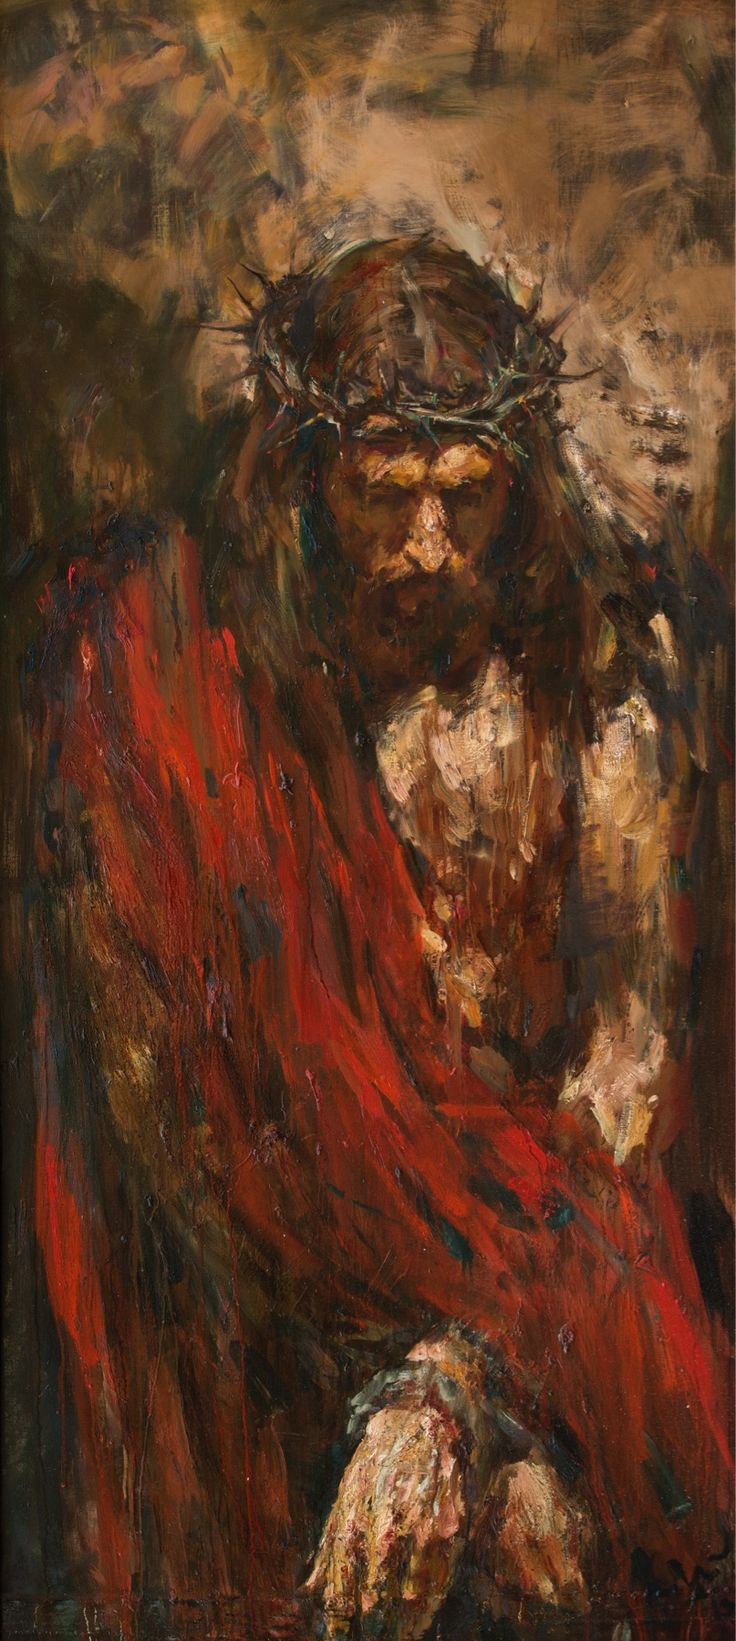 """Ecce homo"", 208x95 cm, oil on canvas,2013. Anatoly Shumkin. This reminds me that Jesus was a man who suffered as we do in his life, but also unimaginaly more for our sins on the cross."